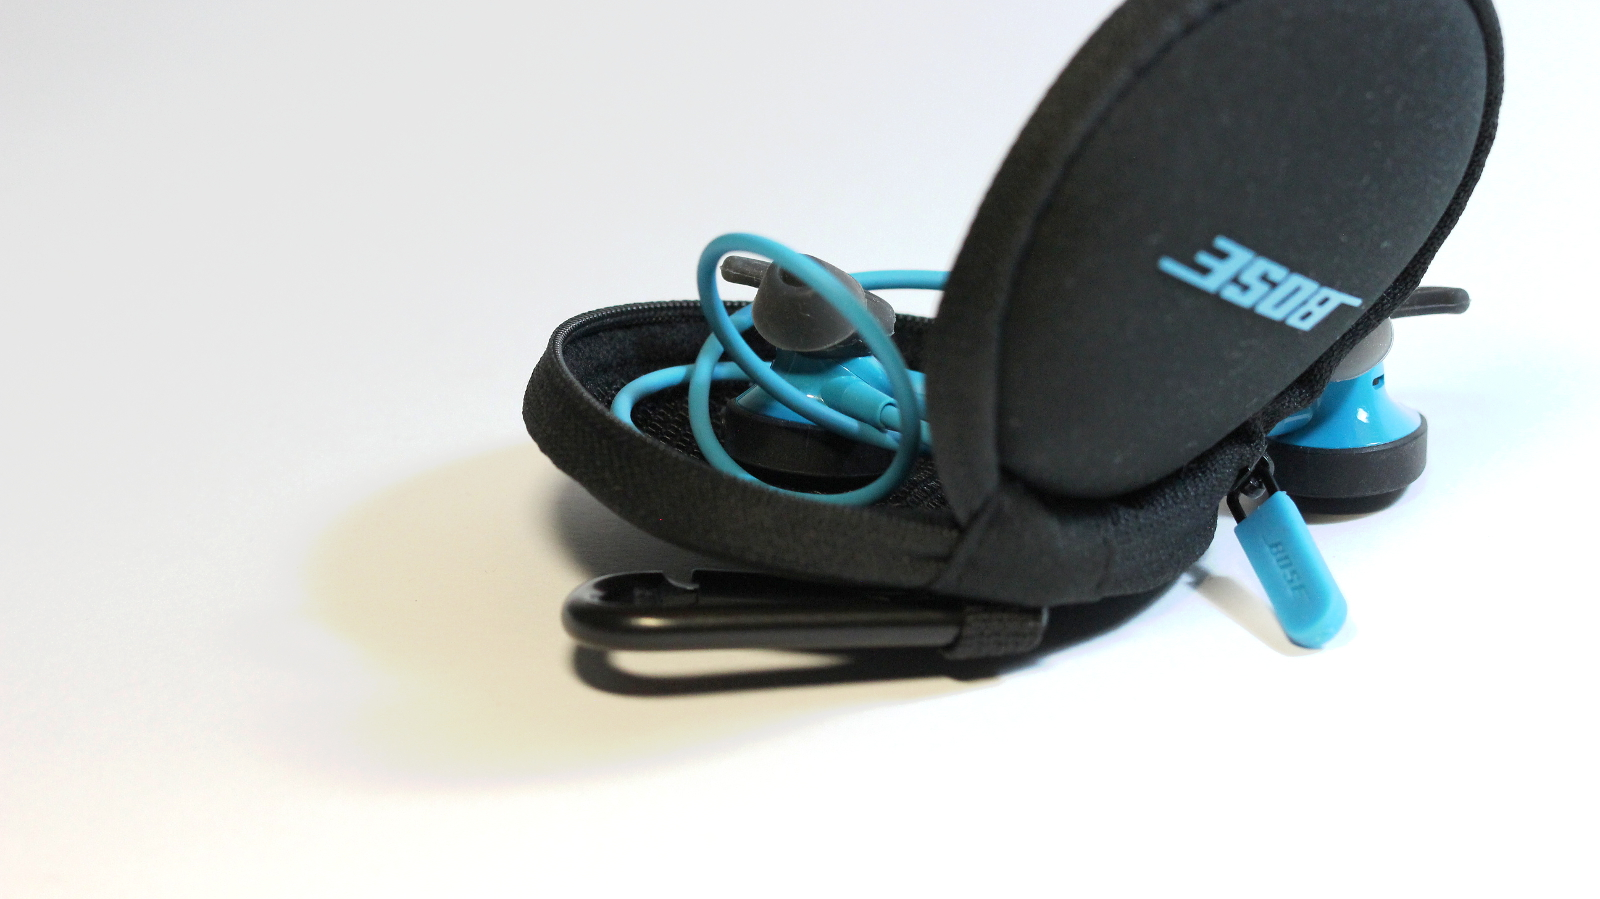 Kabelclip des Bose SoundSport Wireless